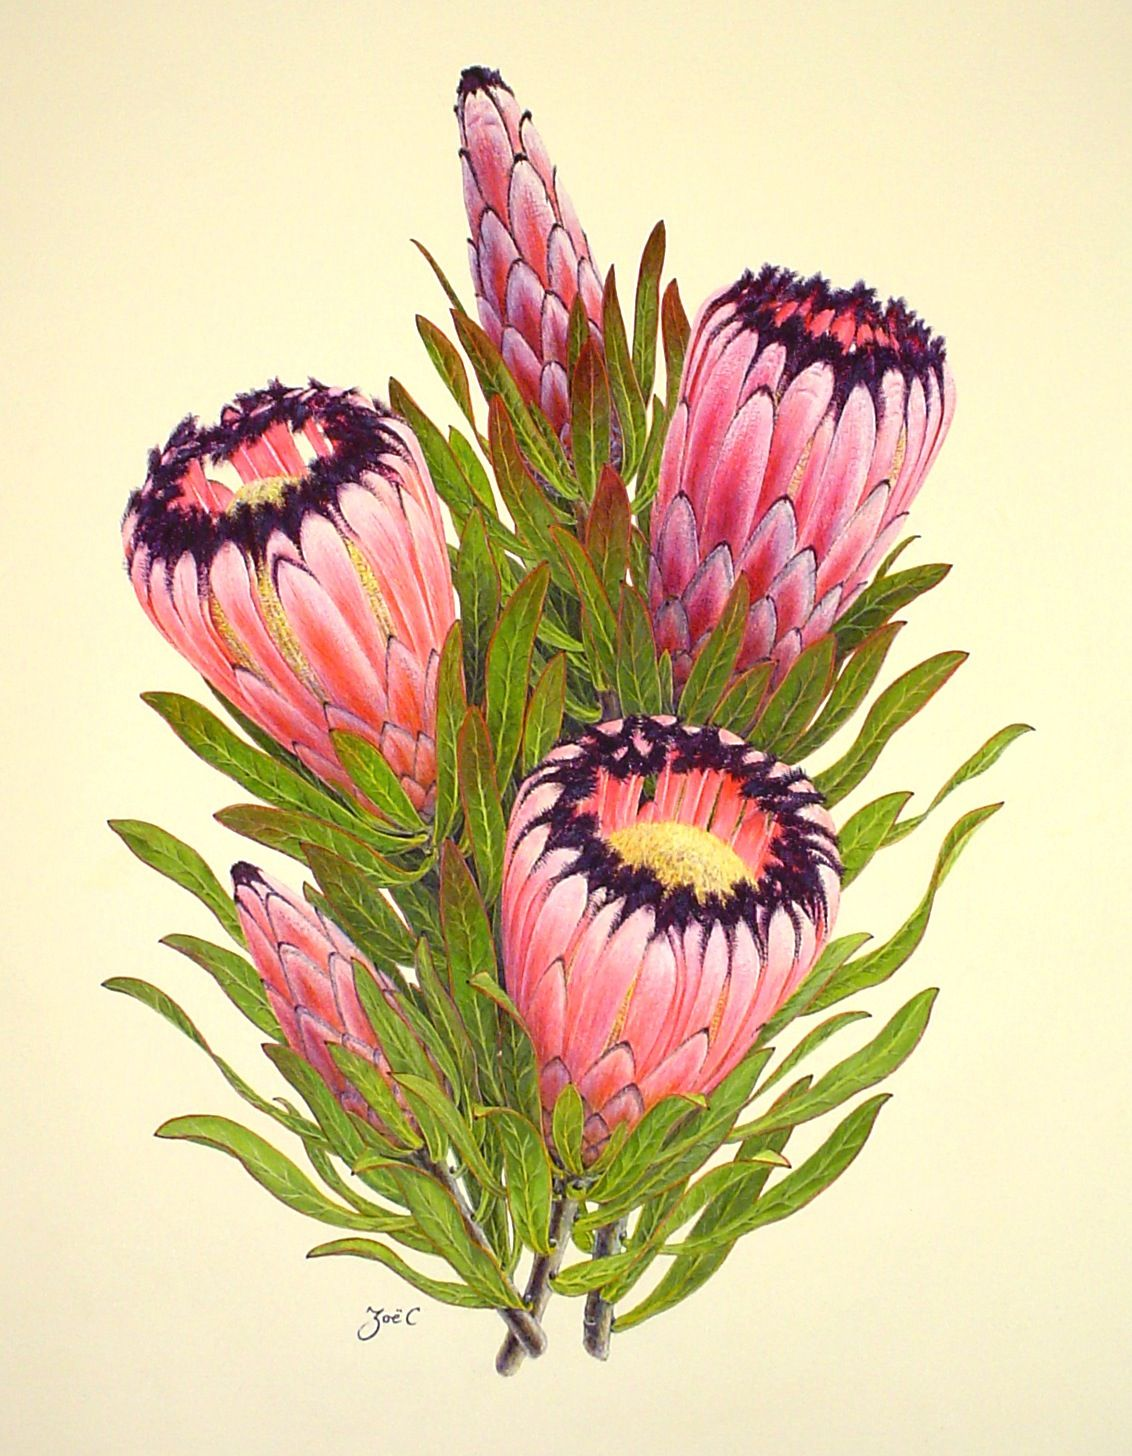 Pin By Sheri Anderson On Tattoos Botanical Flowers Protea Art Botanical Painting